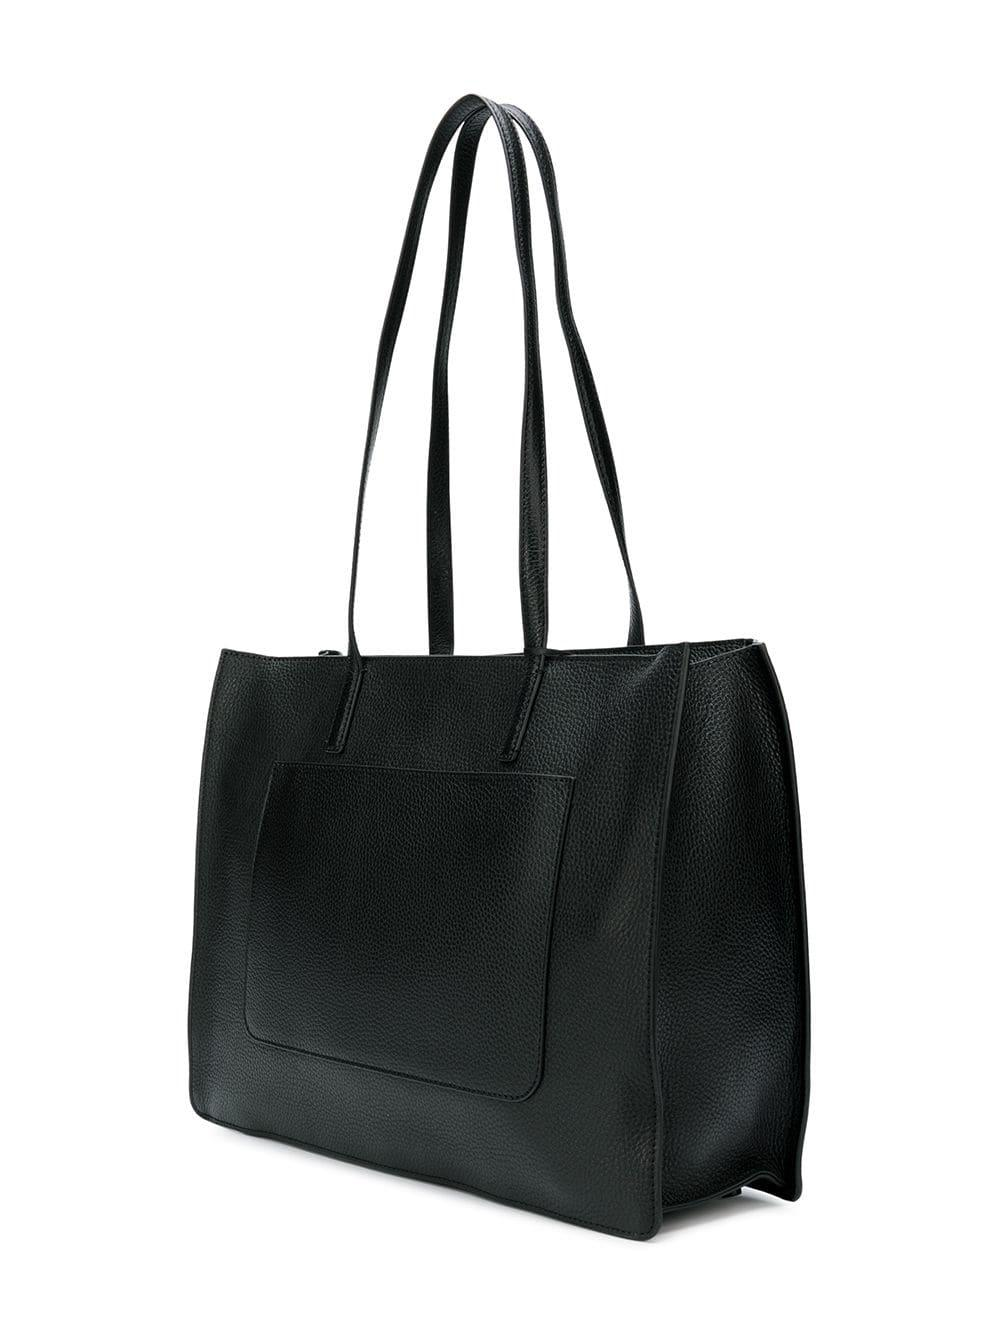 08b16284a DKNY Rectangular Shopper Bag in Black - Lyst